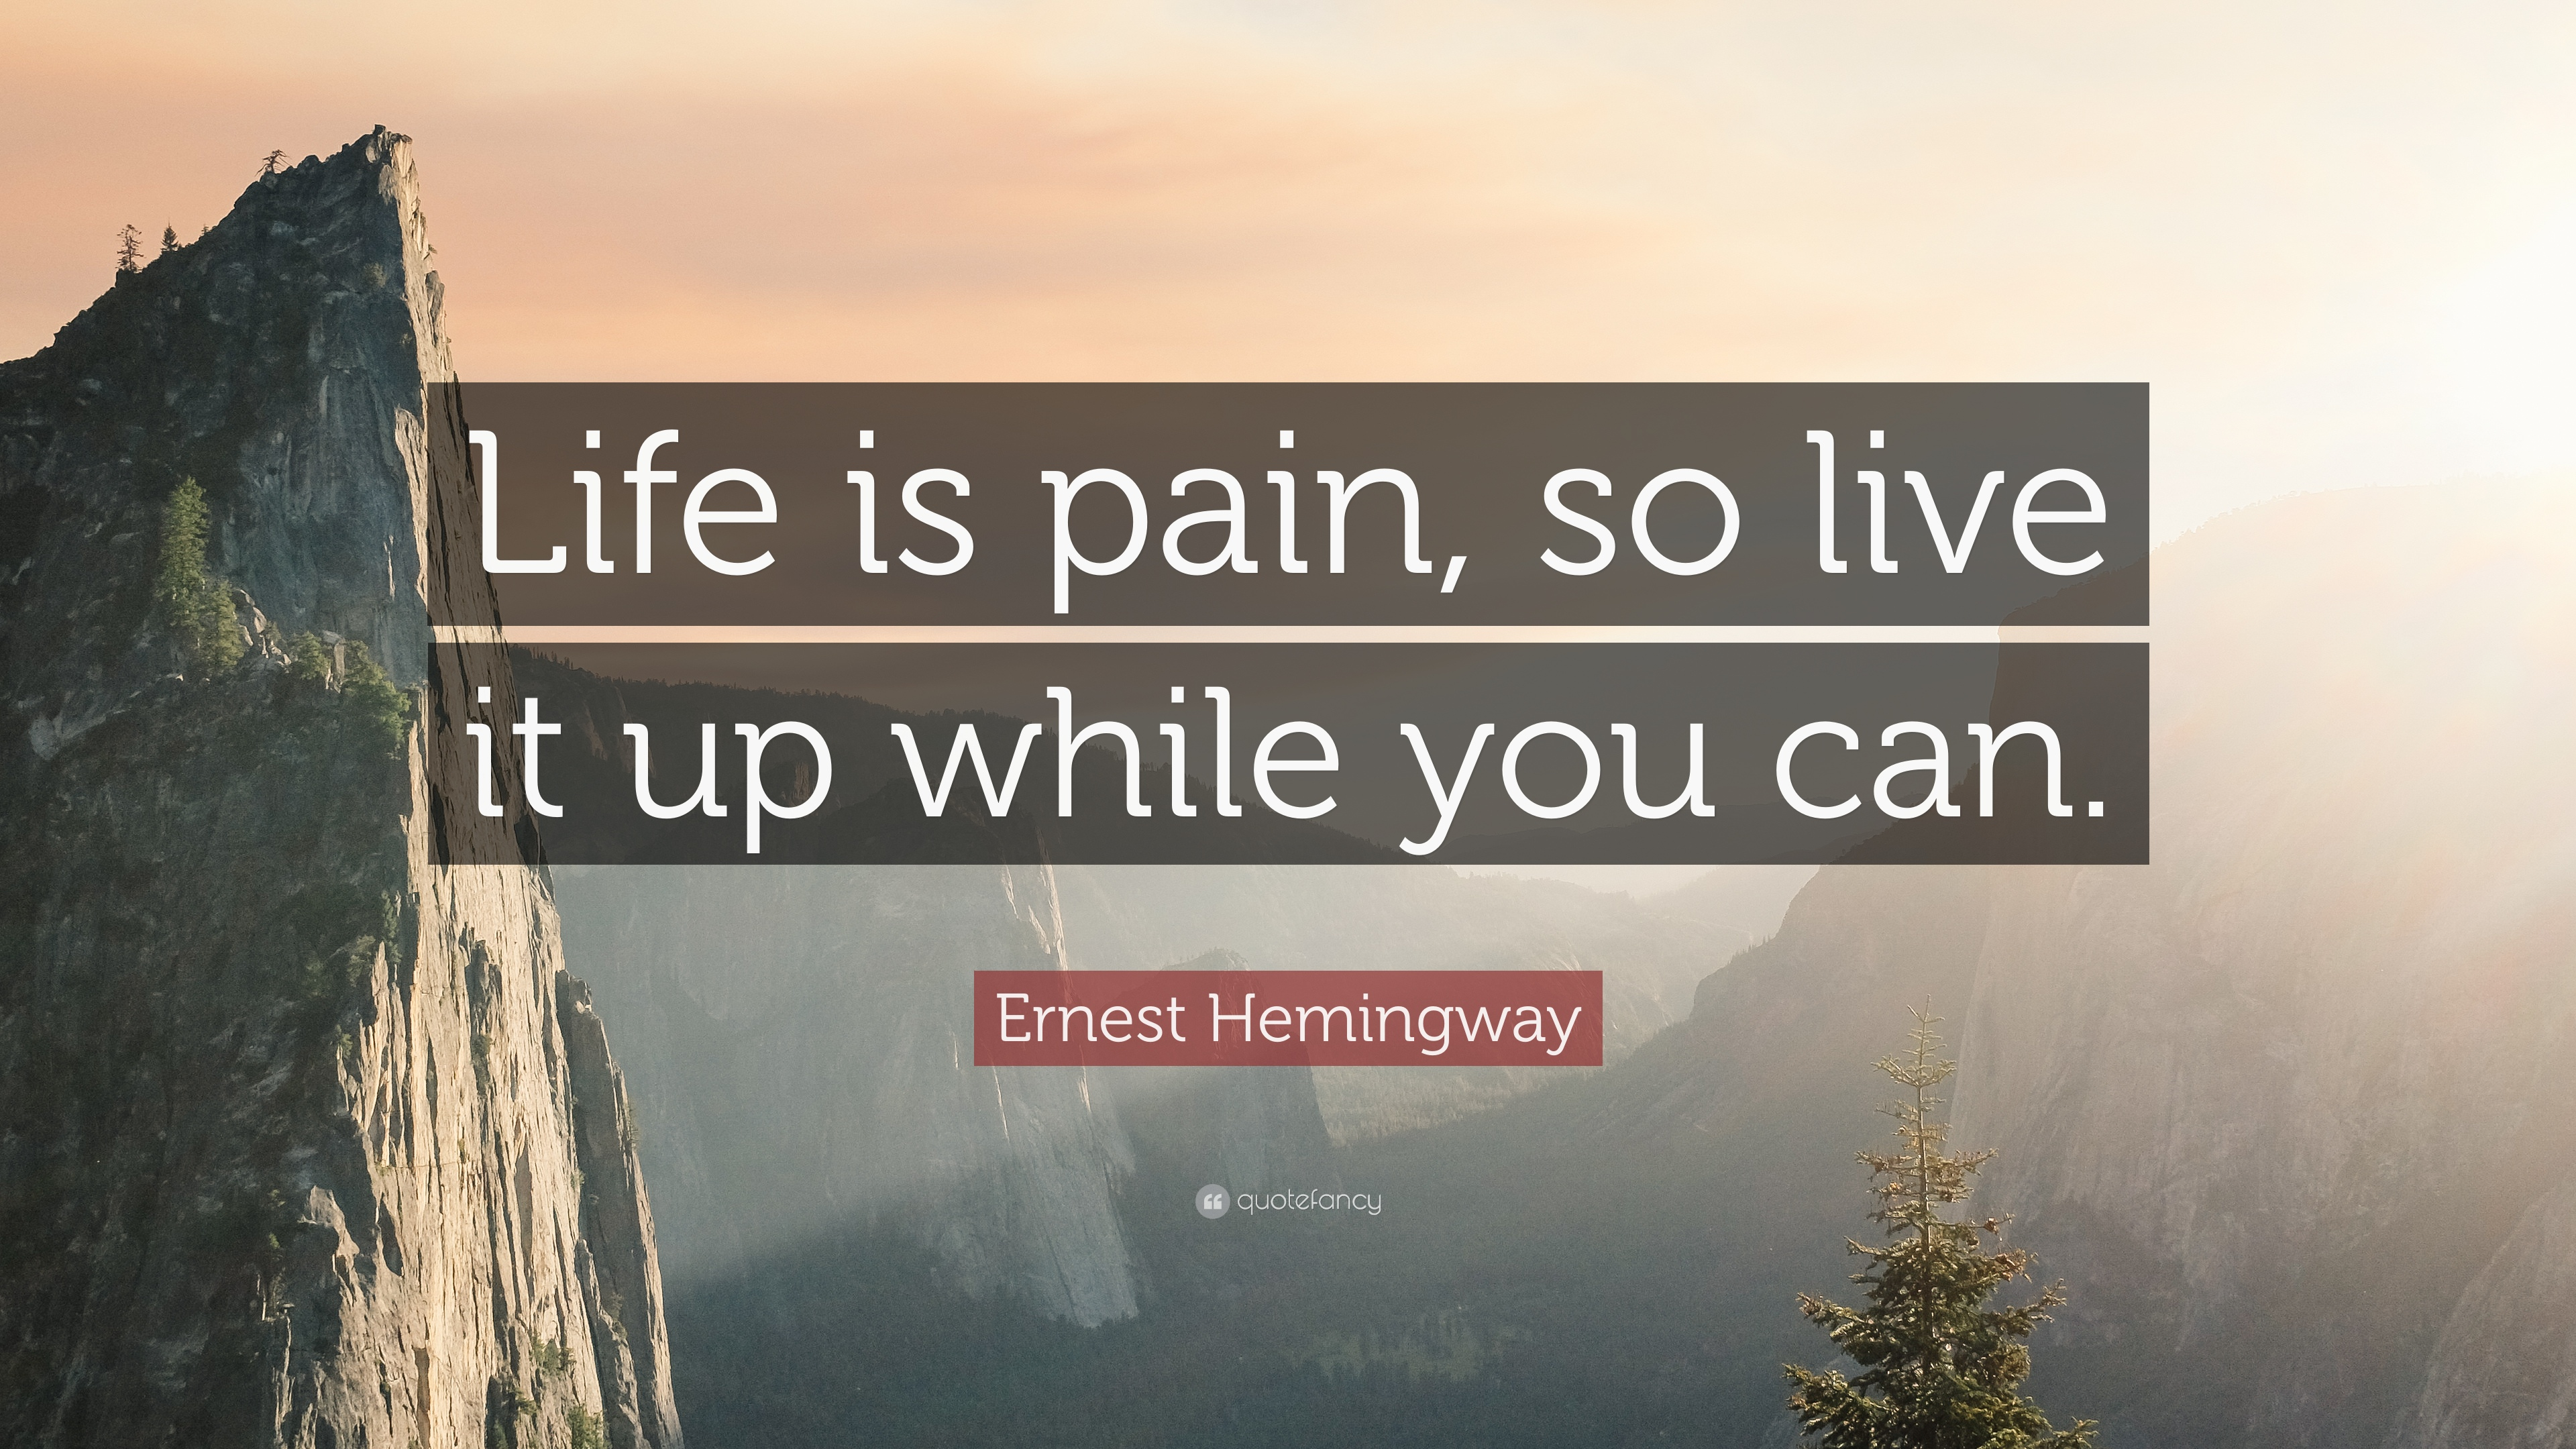 Ernest Hemingway Quote Life Is Pain So Live It Up While You Can